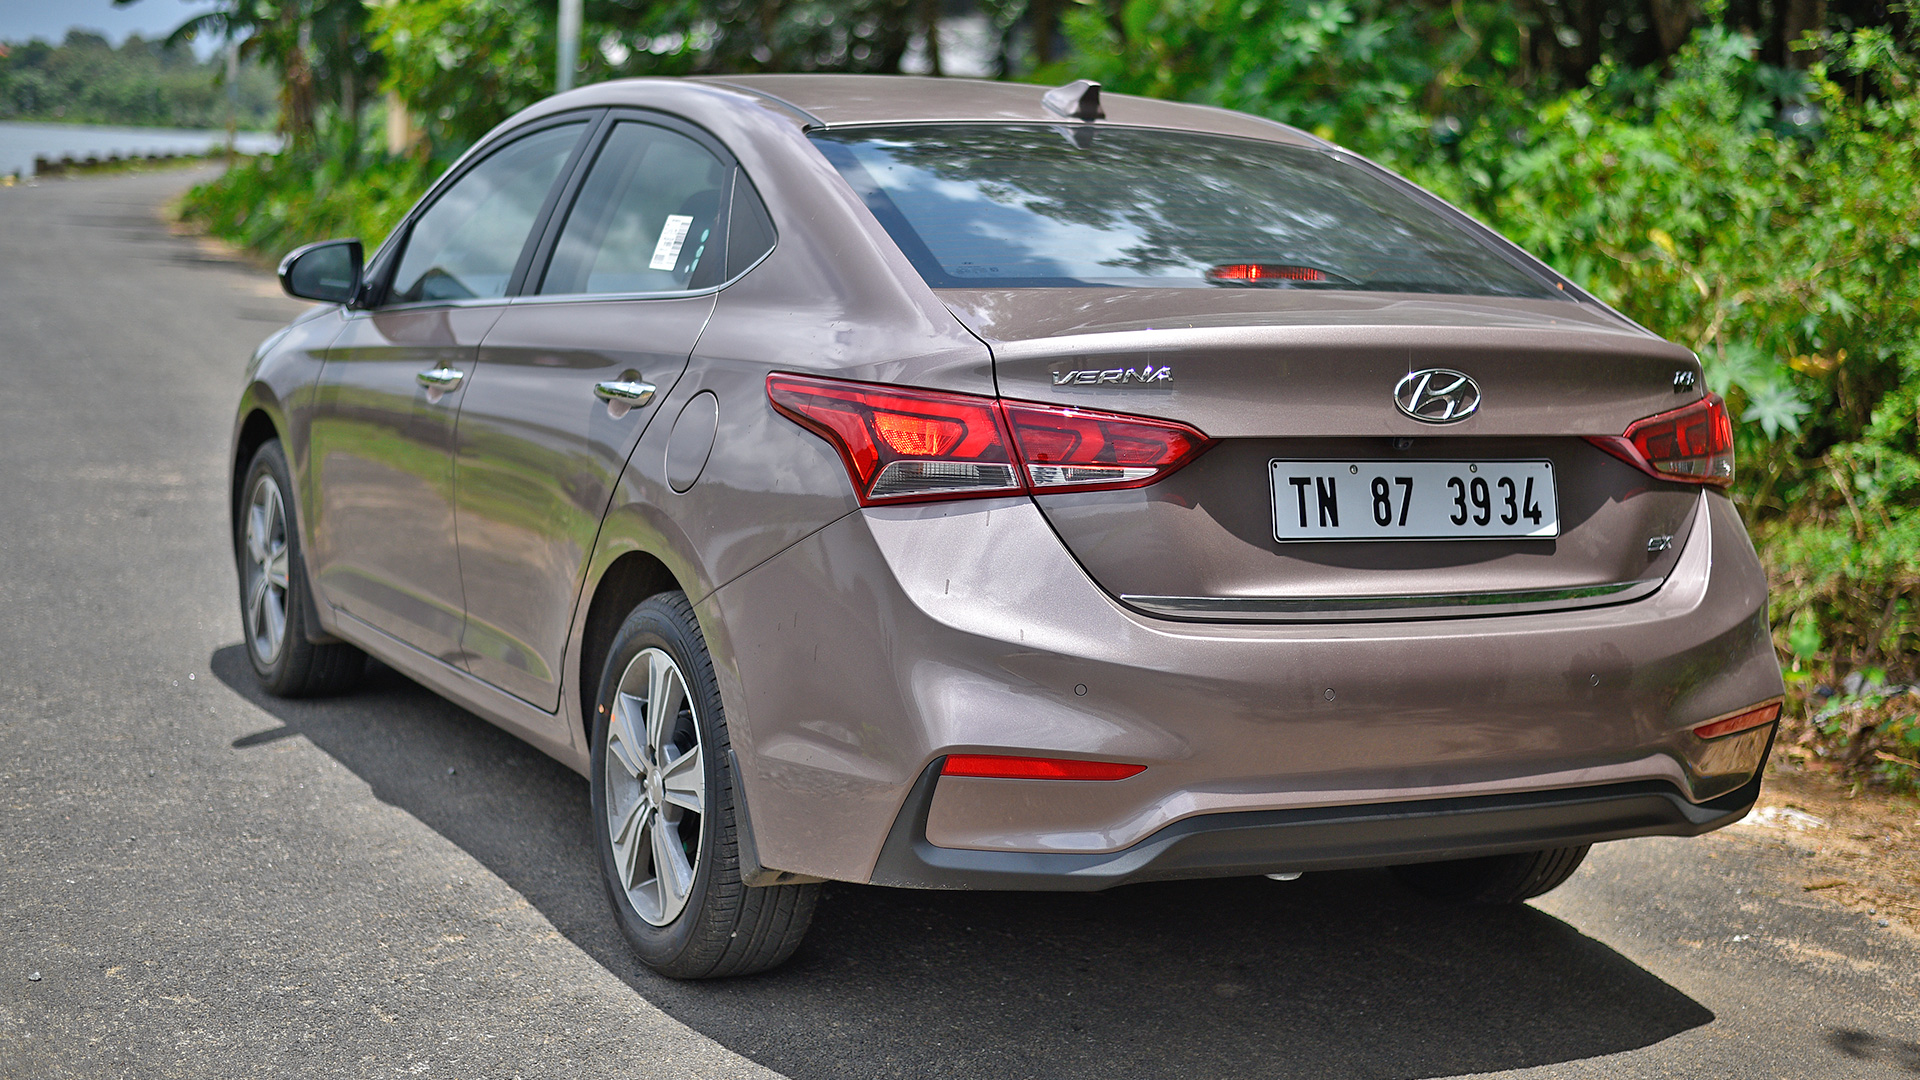 Hyundai Accent Petrol Specification 2015 Hyundai Accent